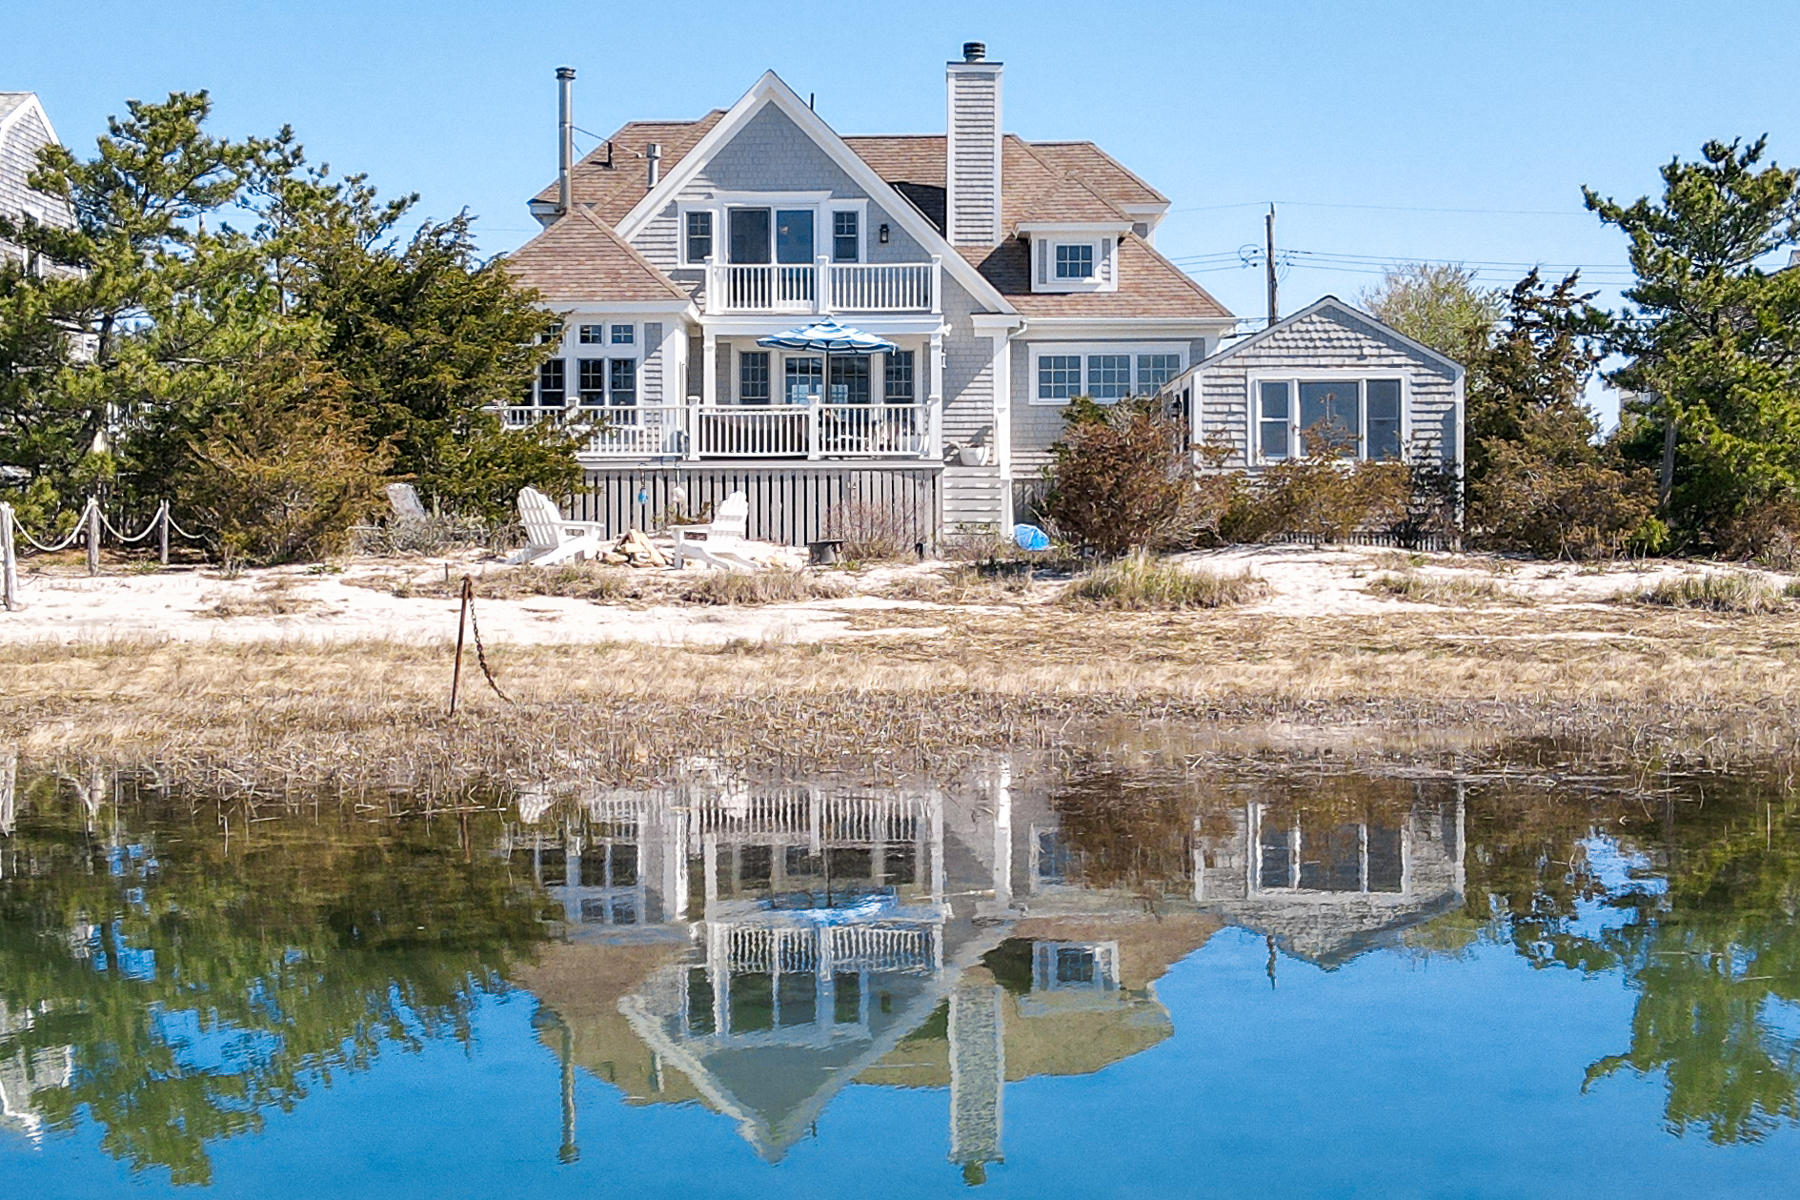 The best of both worlds in this charming seaside community has just arrived in time for summer! Many opportunities to own 2 year-round Scorton Creek marsh front houses just 50 yards to East Sandwich sandy ocean beach! Meander down the marsh path or anchor a small boat on the existing marsh mooring, enjoy the beach, then take in the sunsets and balmy evenings sitting on the back deck and by the fire pit making memories with friends and family. The 2008 quality custom-built main house offers many nice features including a 1st-floor sitting area and half bath ideal for a home office, wide pine/tile flooring throughout, granite/tile baths, gourmet kitchen/dining combo with granite counters, solid cabinets, high-end appliances and comes complete with its own special pizza oven direct from Italy! Relax by the fireplace in the living room while enjoying the marsh views, The 2nd level offers spectacular marsh views from the primary bedroom, with a beautifully designed private full bath, walk-in bonus room with laundry and stunning ocean views from the 2nd bedroom! The sweet guest cottage has marsh views, kitchenette, bathroom, outdoor shower and living/sleeping area. Great rental history!